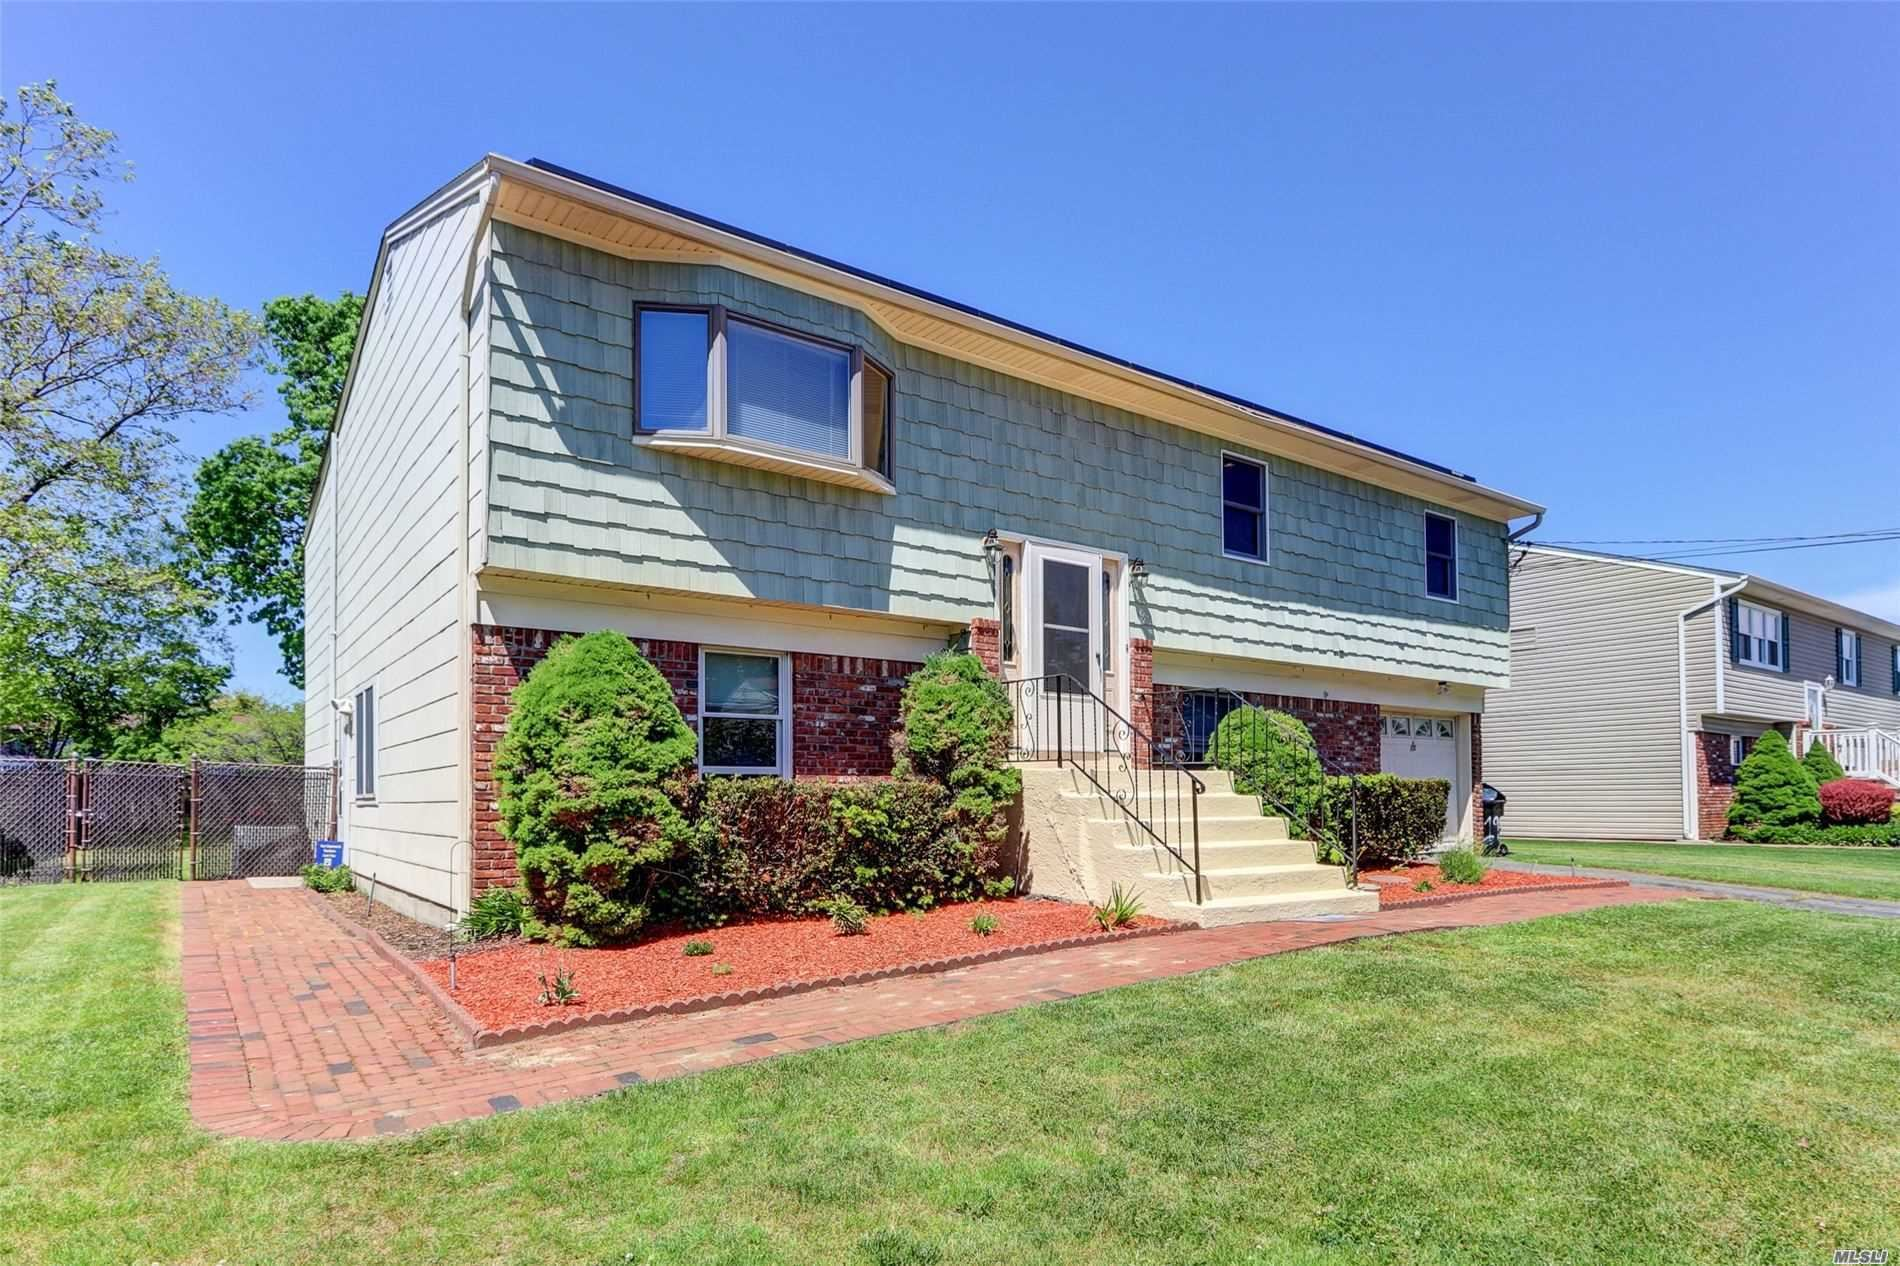 19 Westminster Lane, West Islip, NY 11795 - MLS#: 3216998